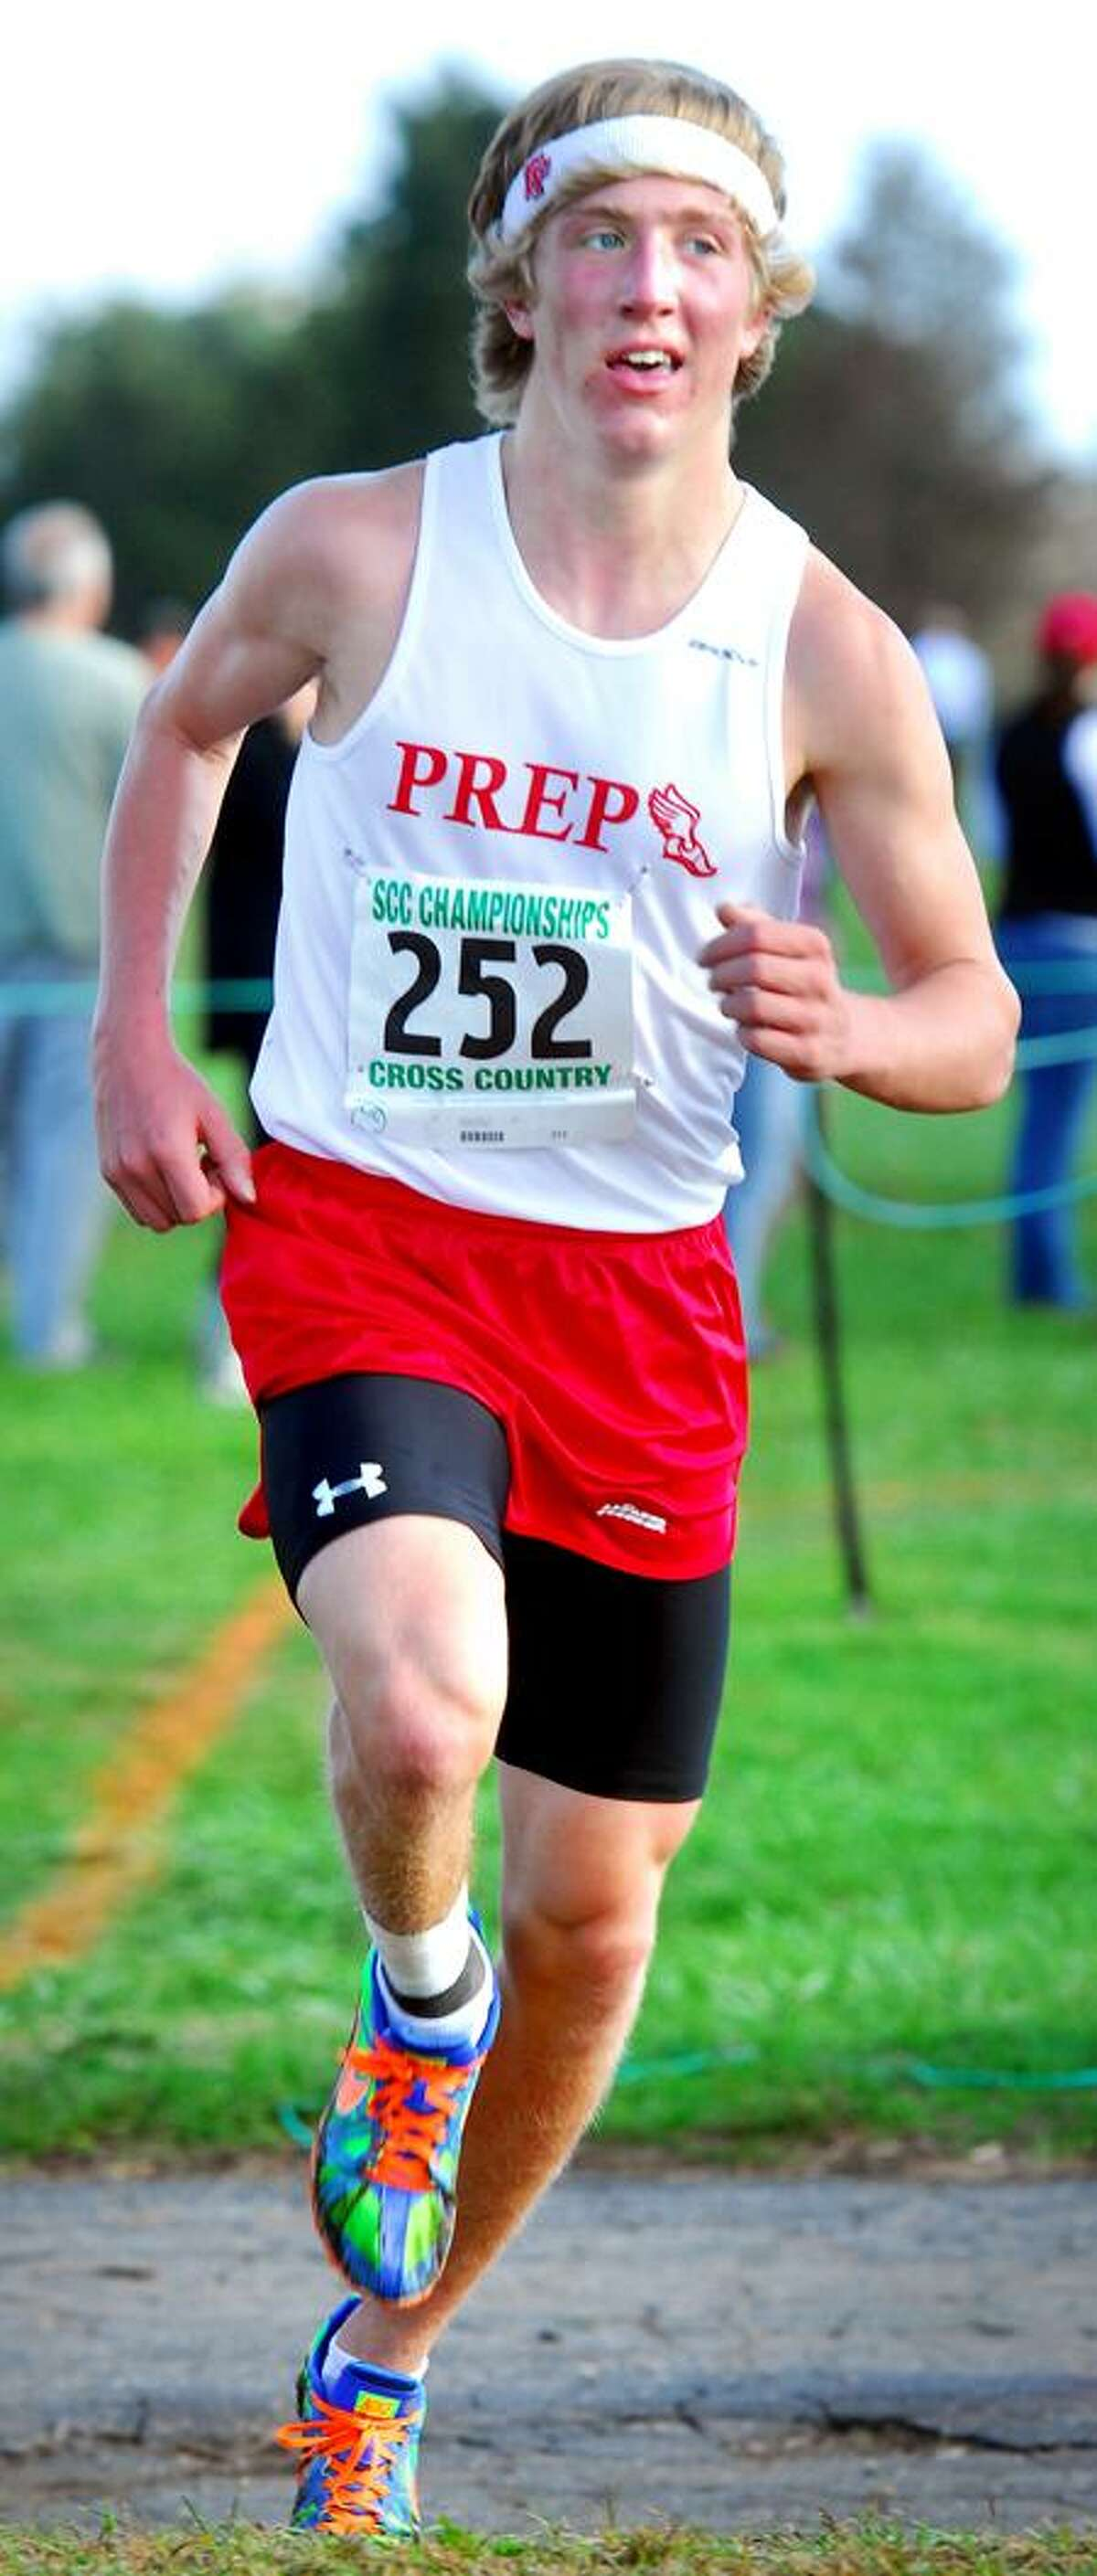 Connor Rog of Fairfield Prep is one of the top runenrs competing at this weekend's state championships. (Arnold Gold/Register)